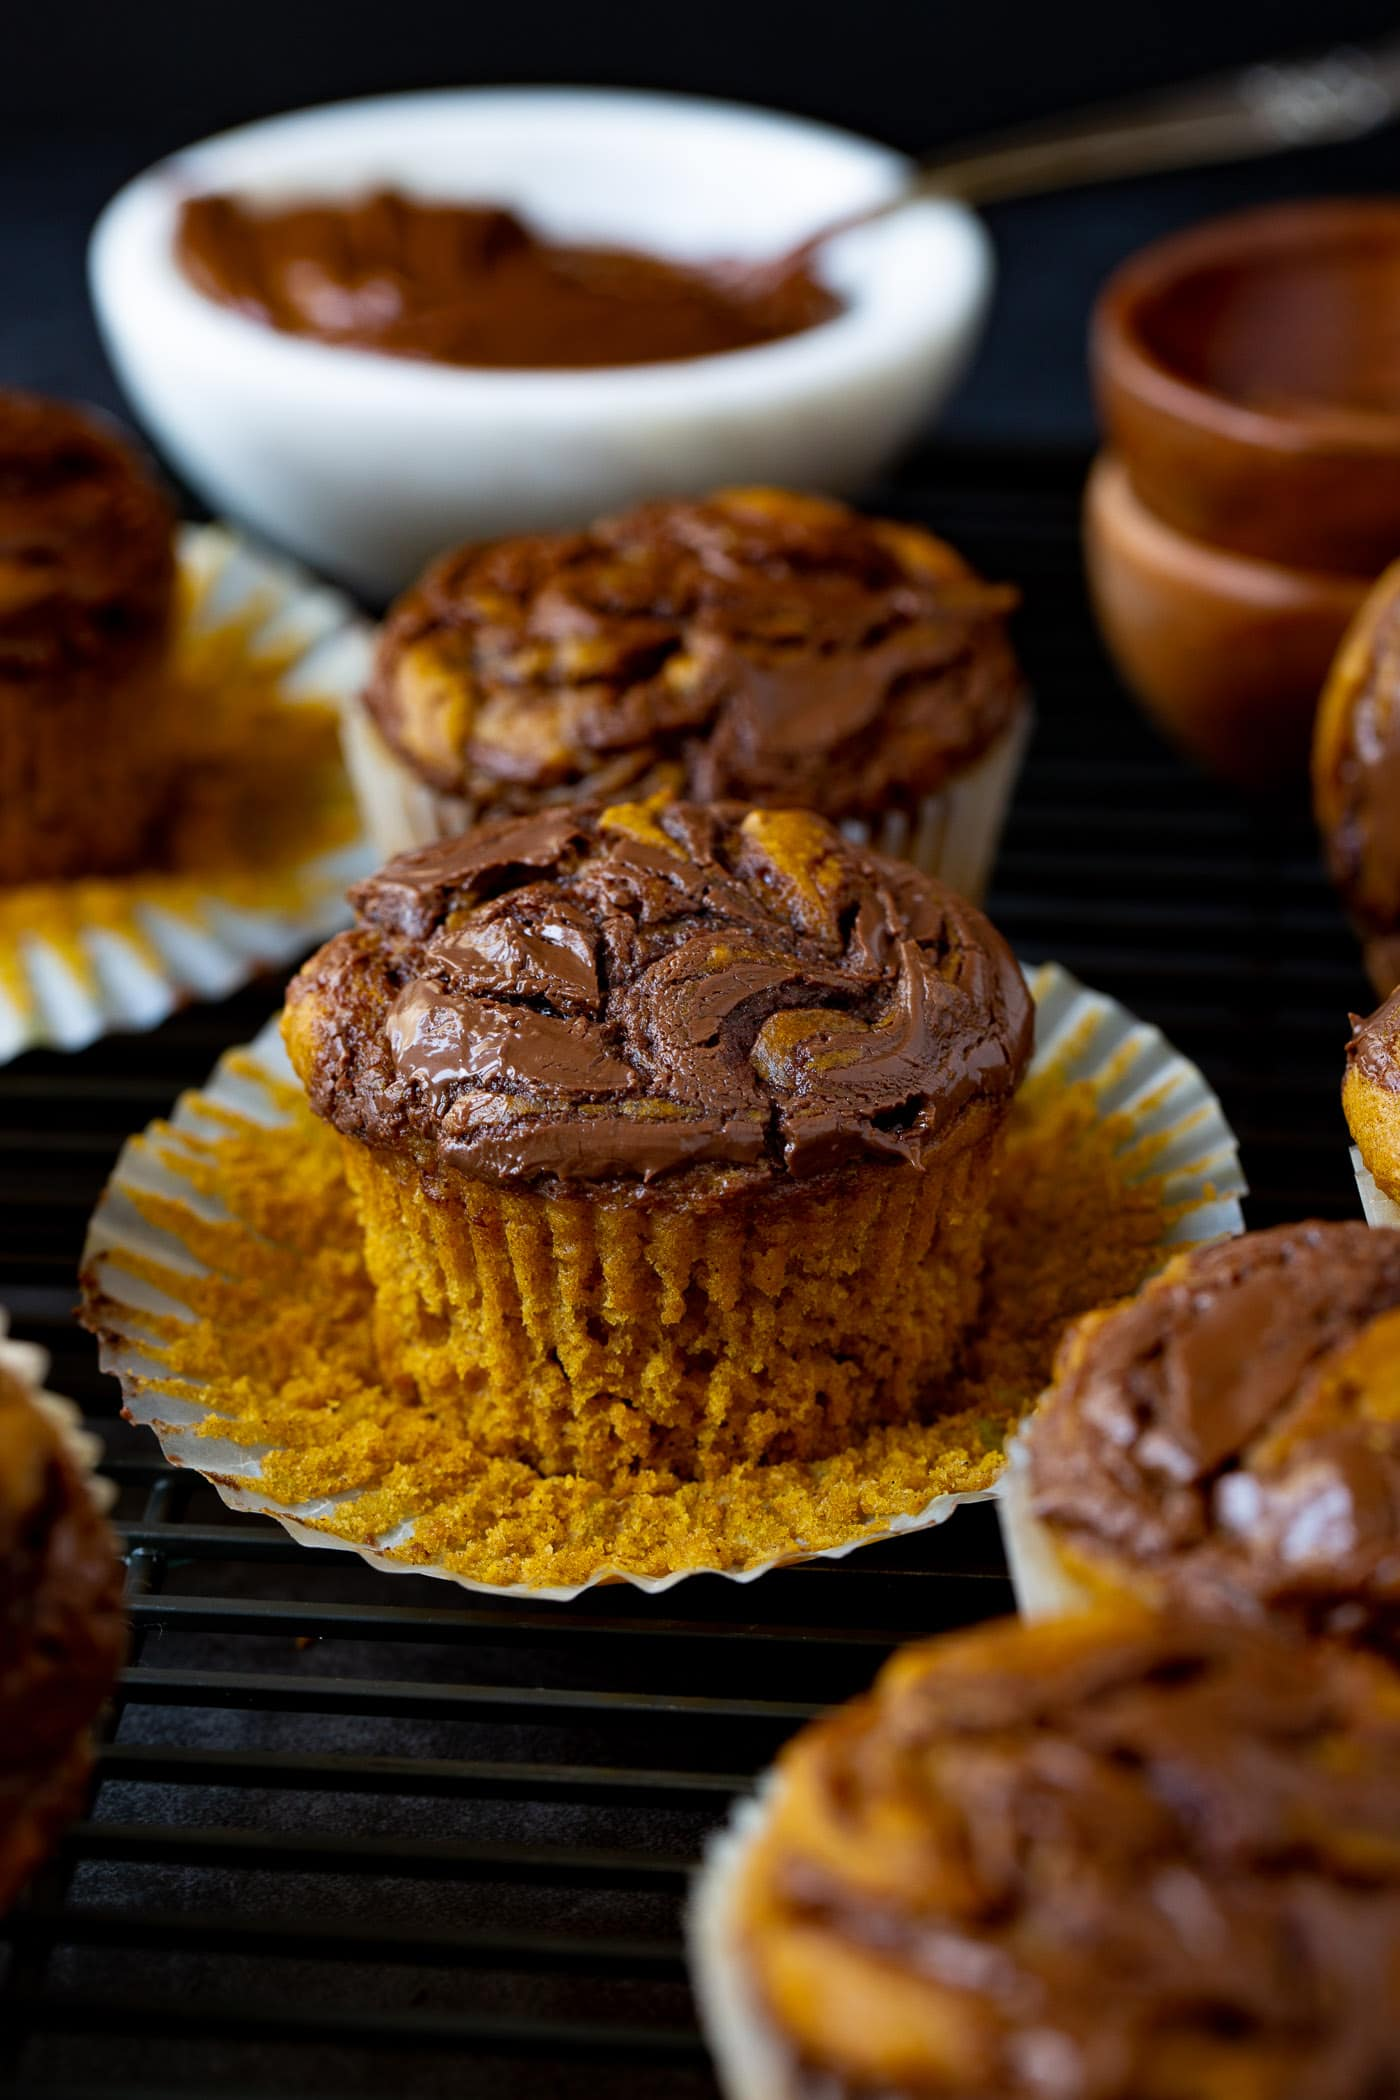 Nutella swirled pumpkin muffins. The paper muffin liners are peeled back so you can see the soft pumpkin muffin with the nutella swirled through it.